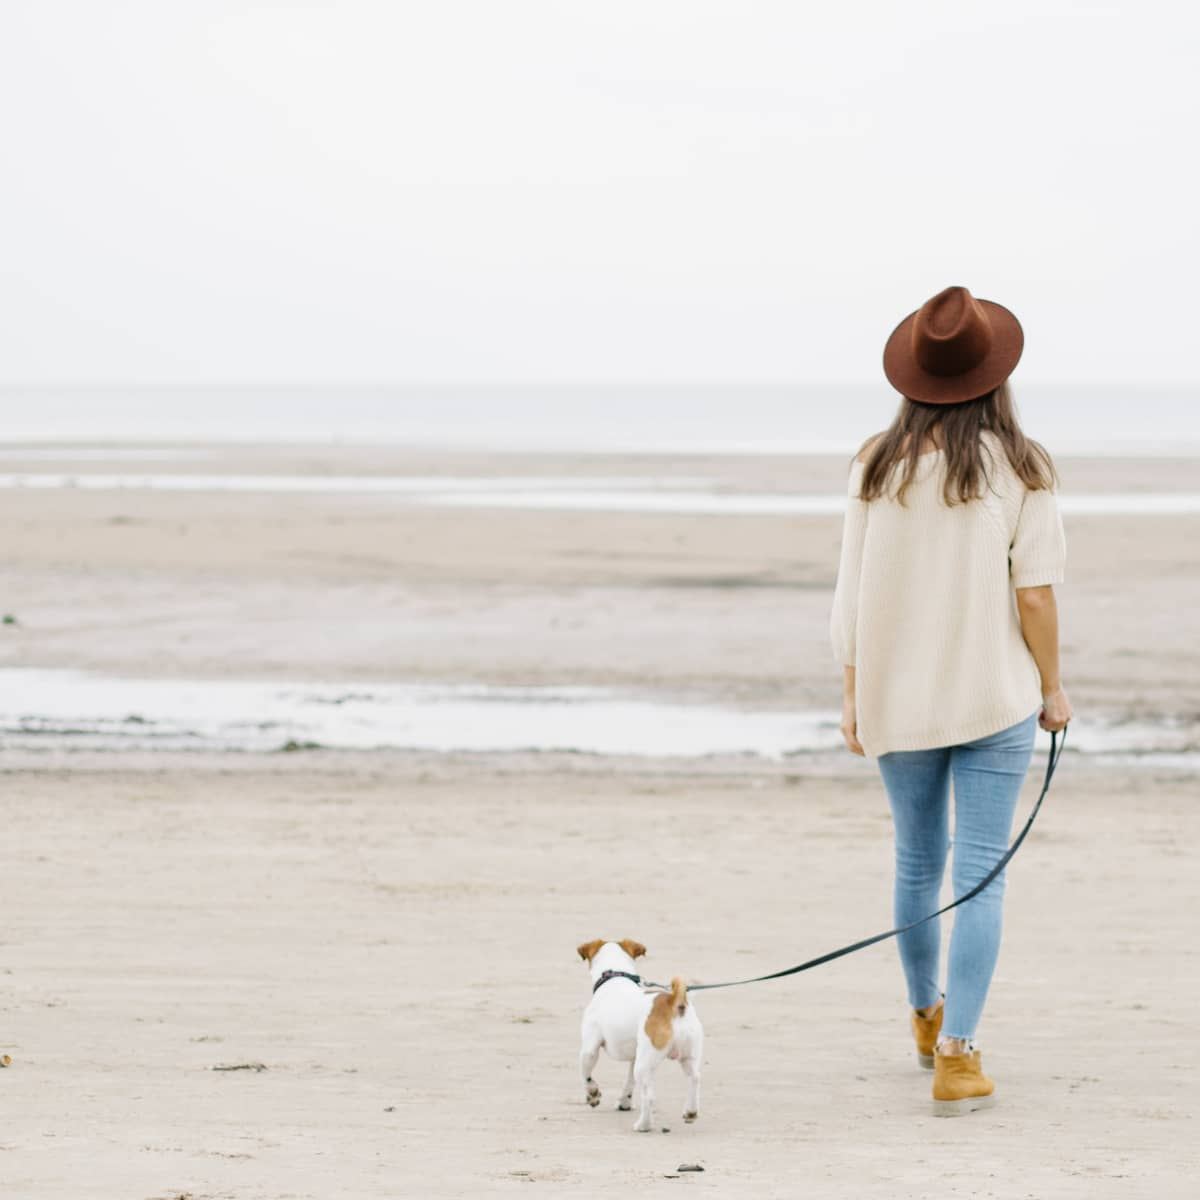 A woman wearing a sweater, jeans, and a hat walking a small dog along the beach.